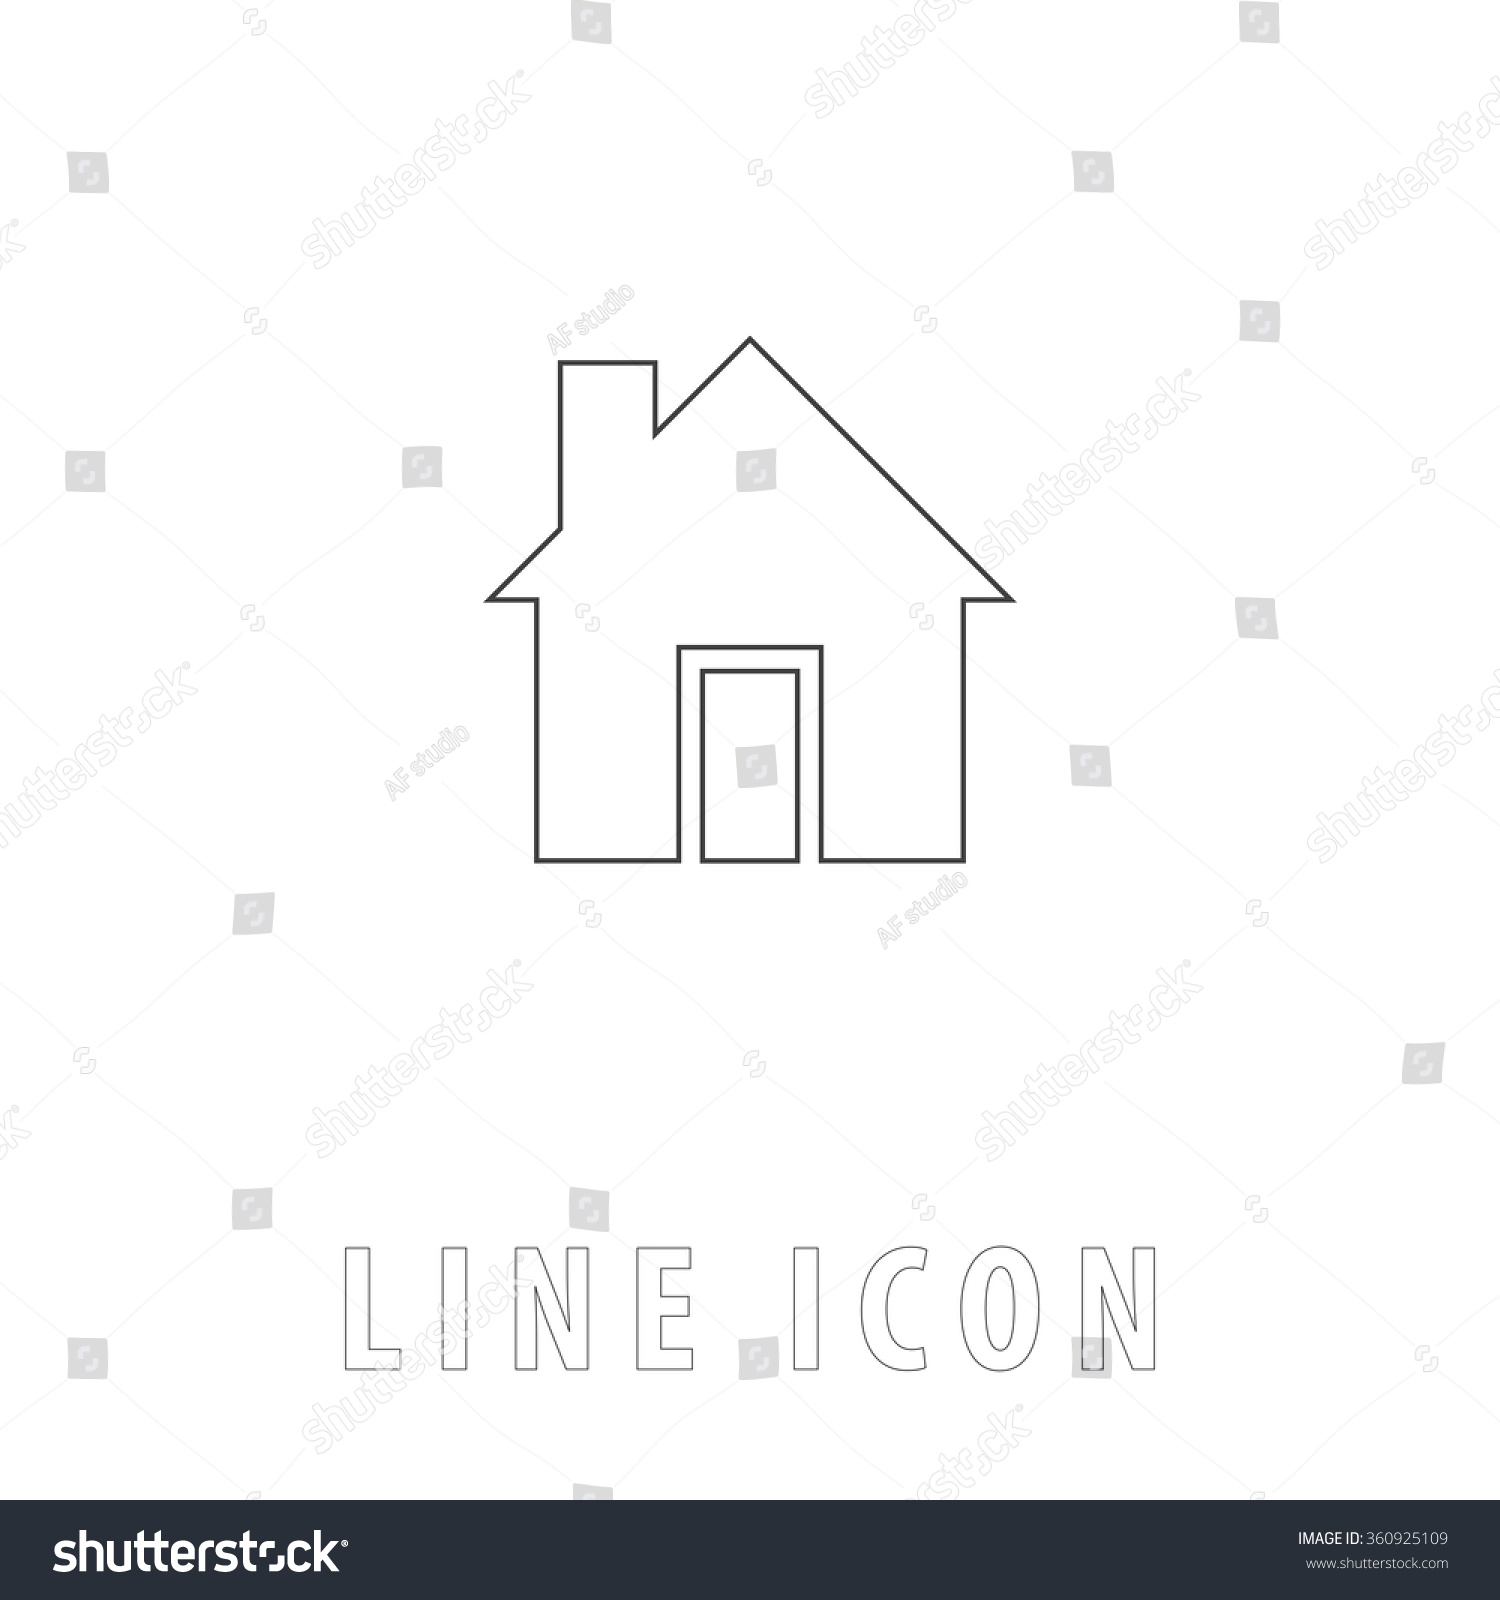 House outline picture - House Outline Simple Vector Icon On White Background Line Pictogram With Text